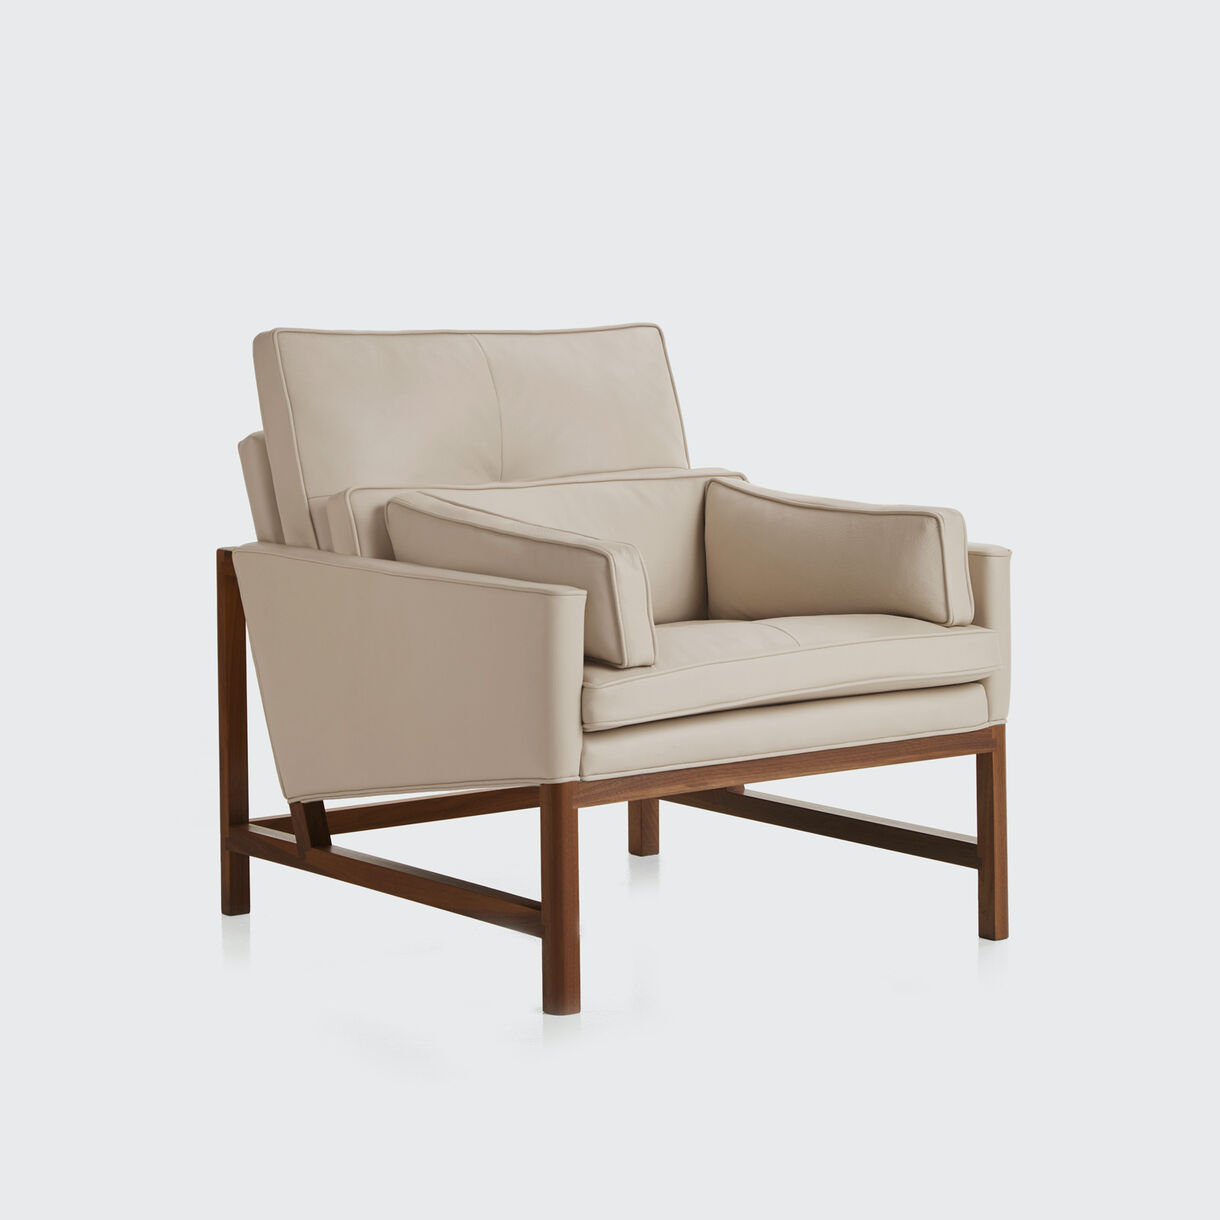 Wood Frame Low Back Lounge Chair